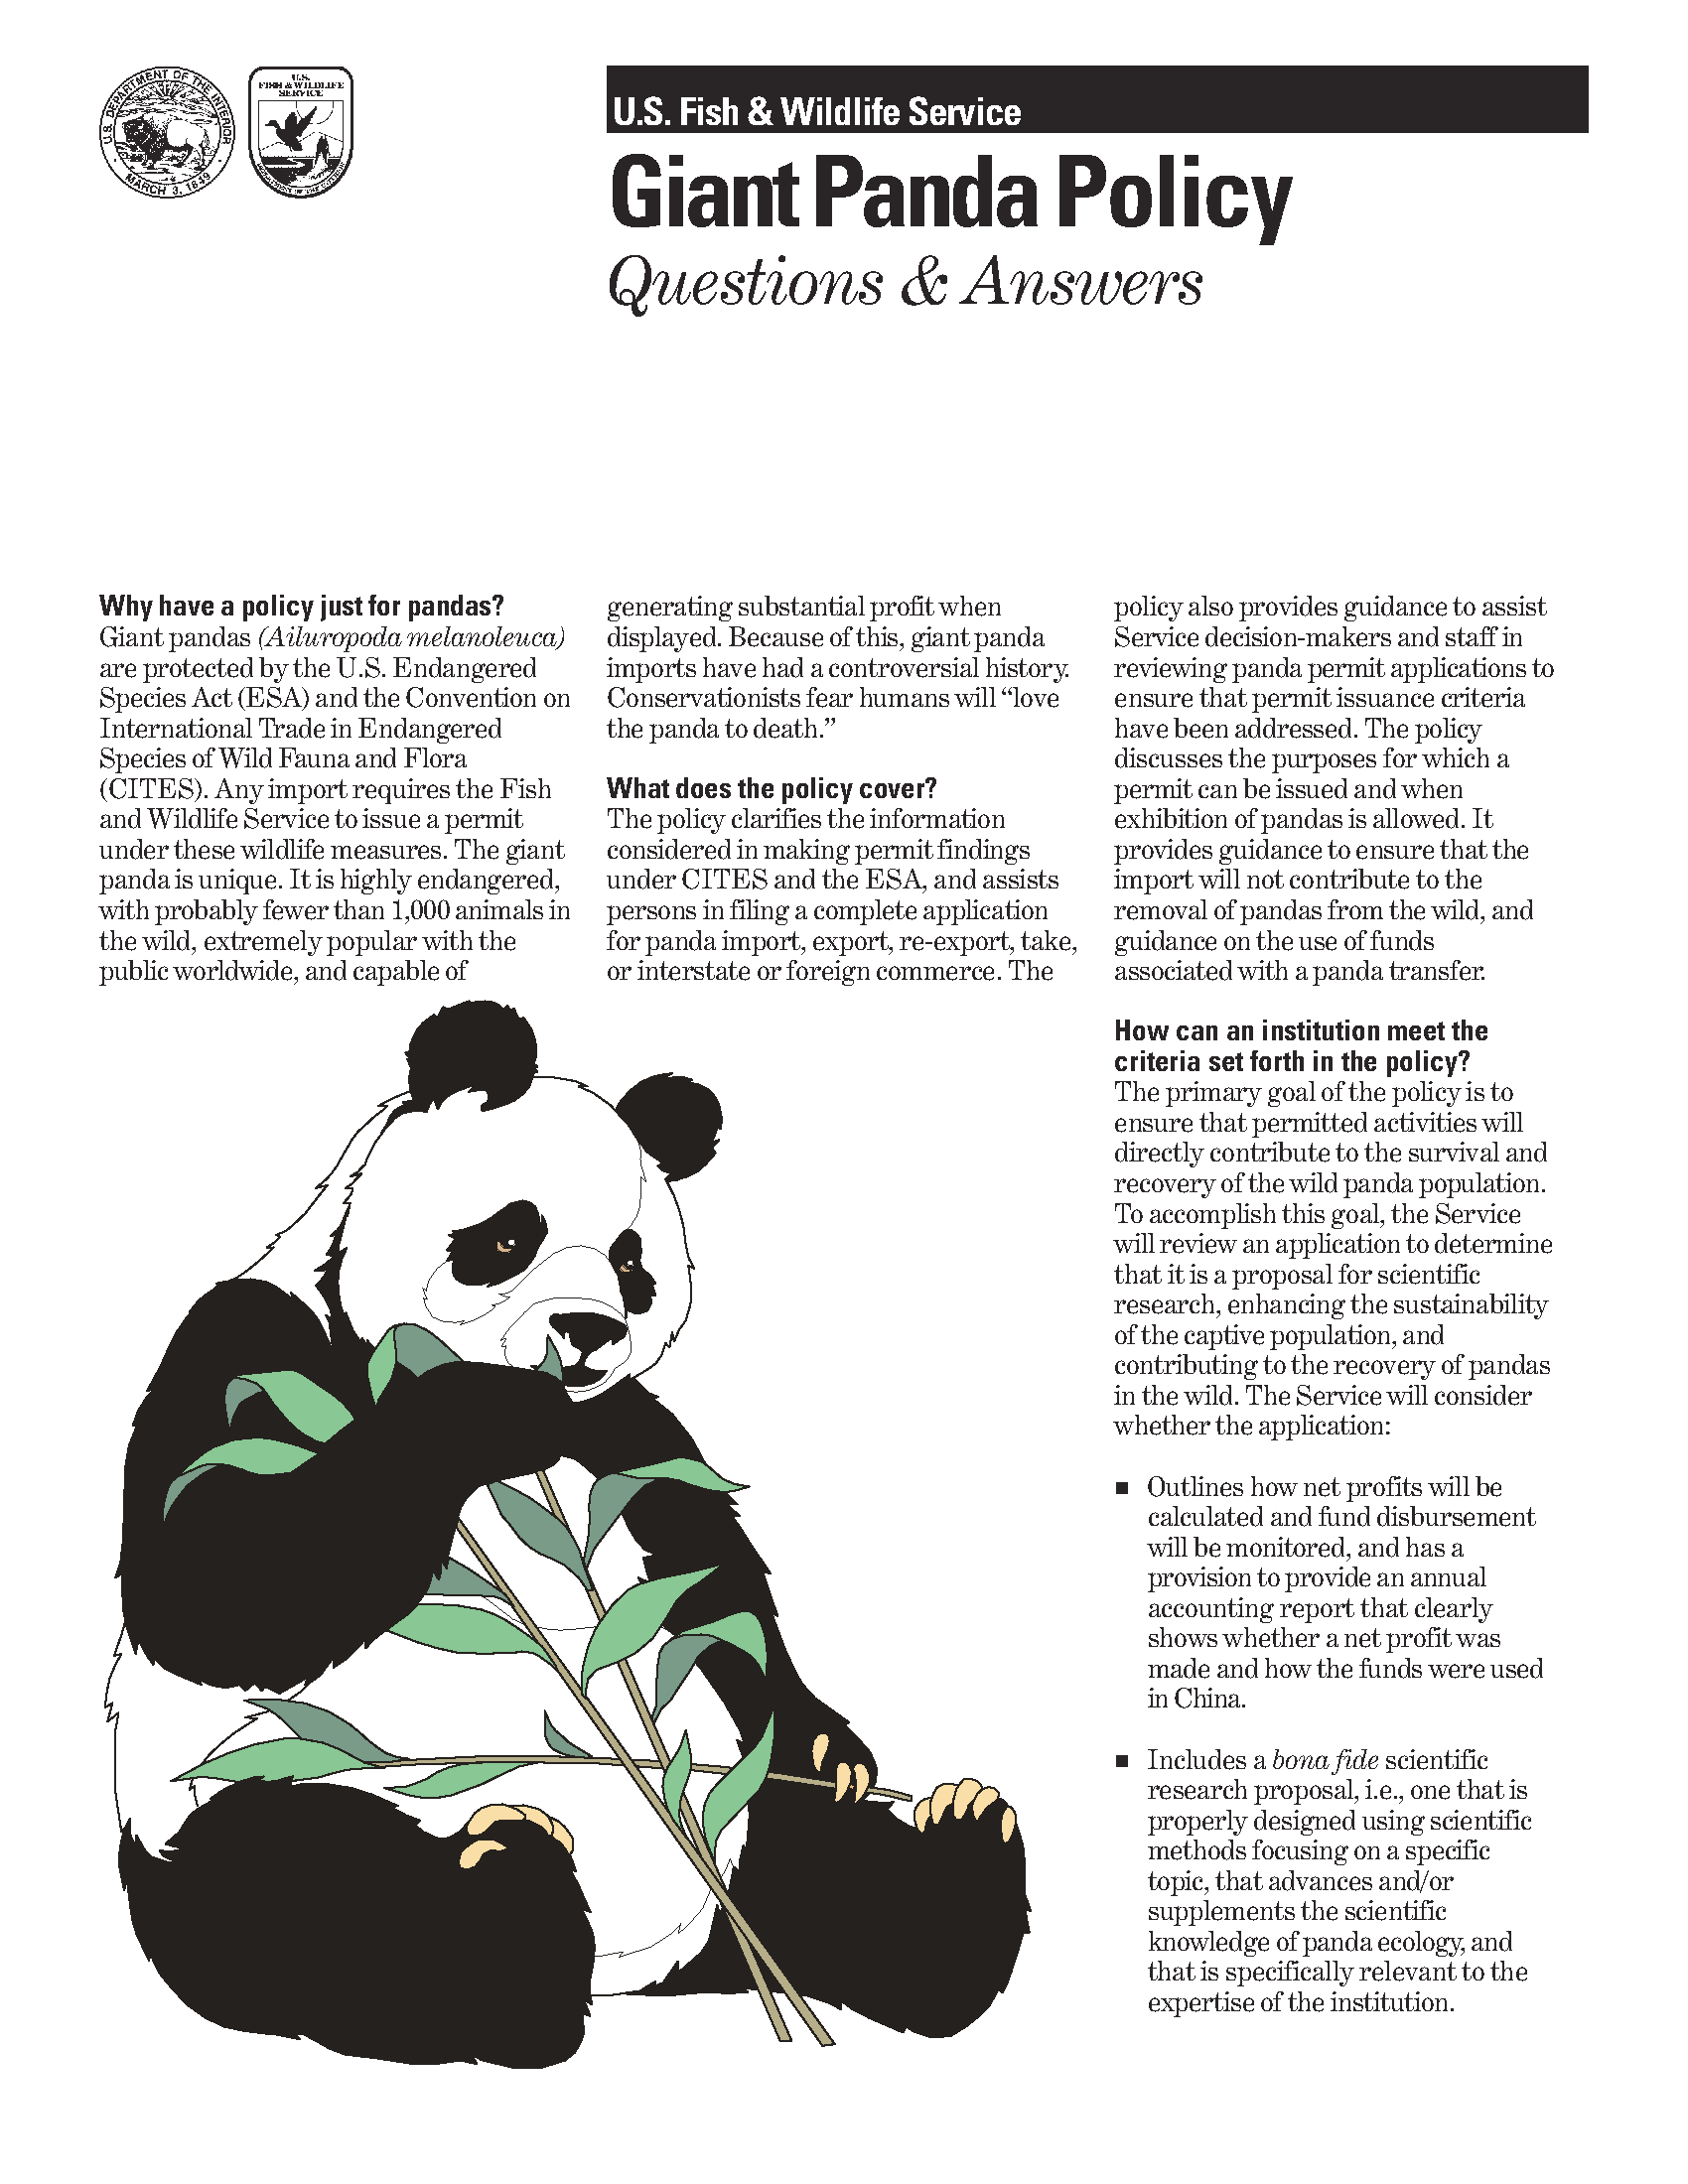 Giant panda policy: questions and answers - Documents - USFWS